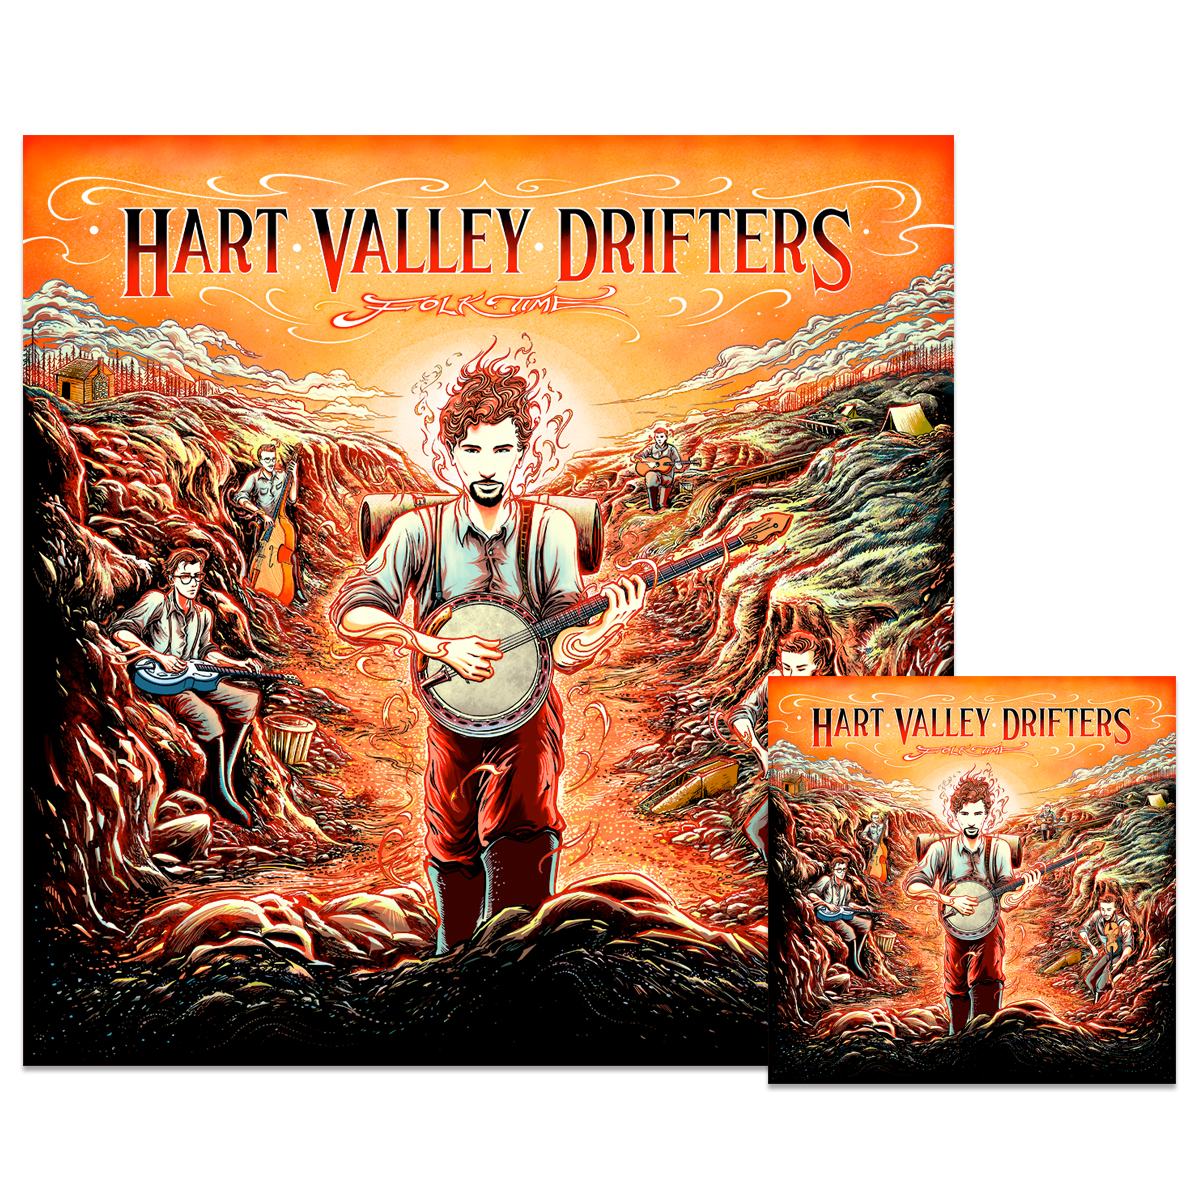 Hart Valley Drifters - Folk Time: Download & Poster Bundle